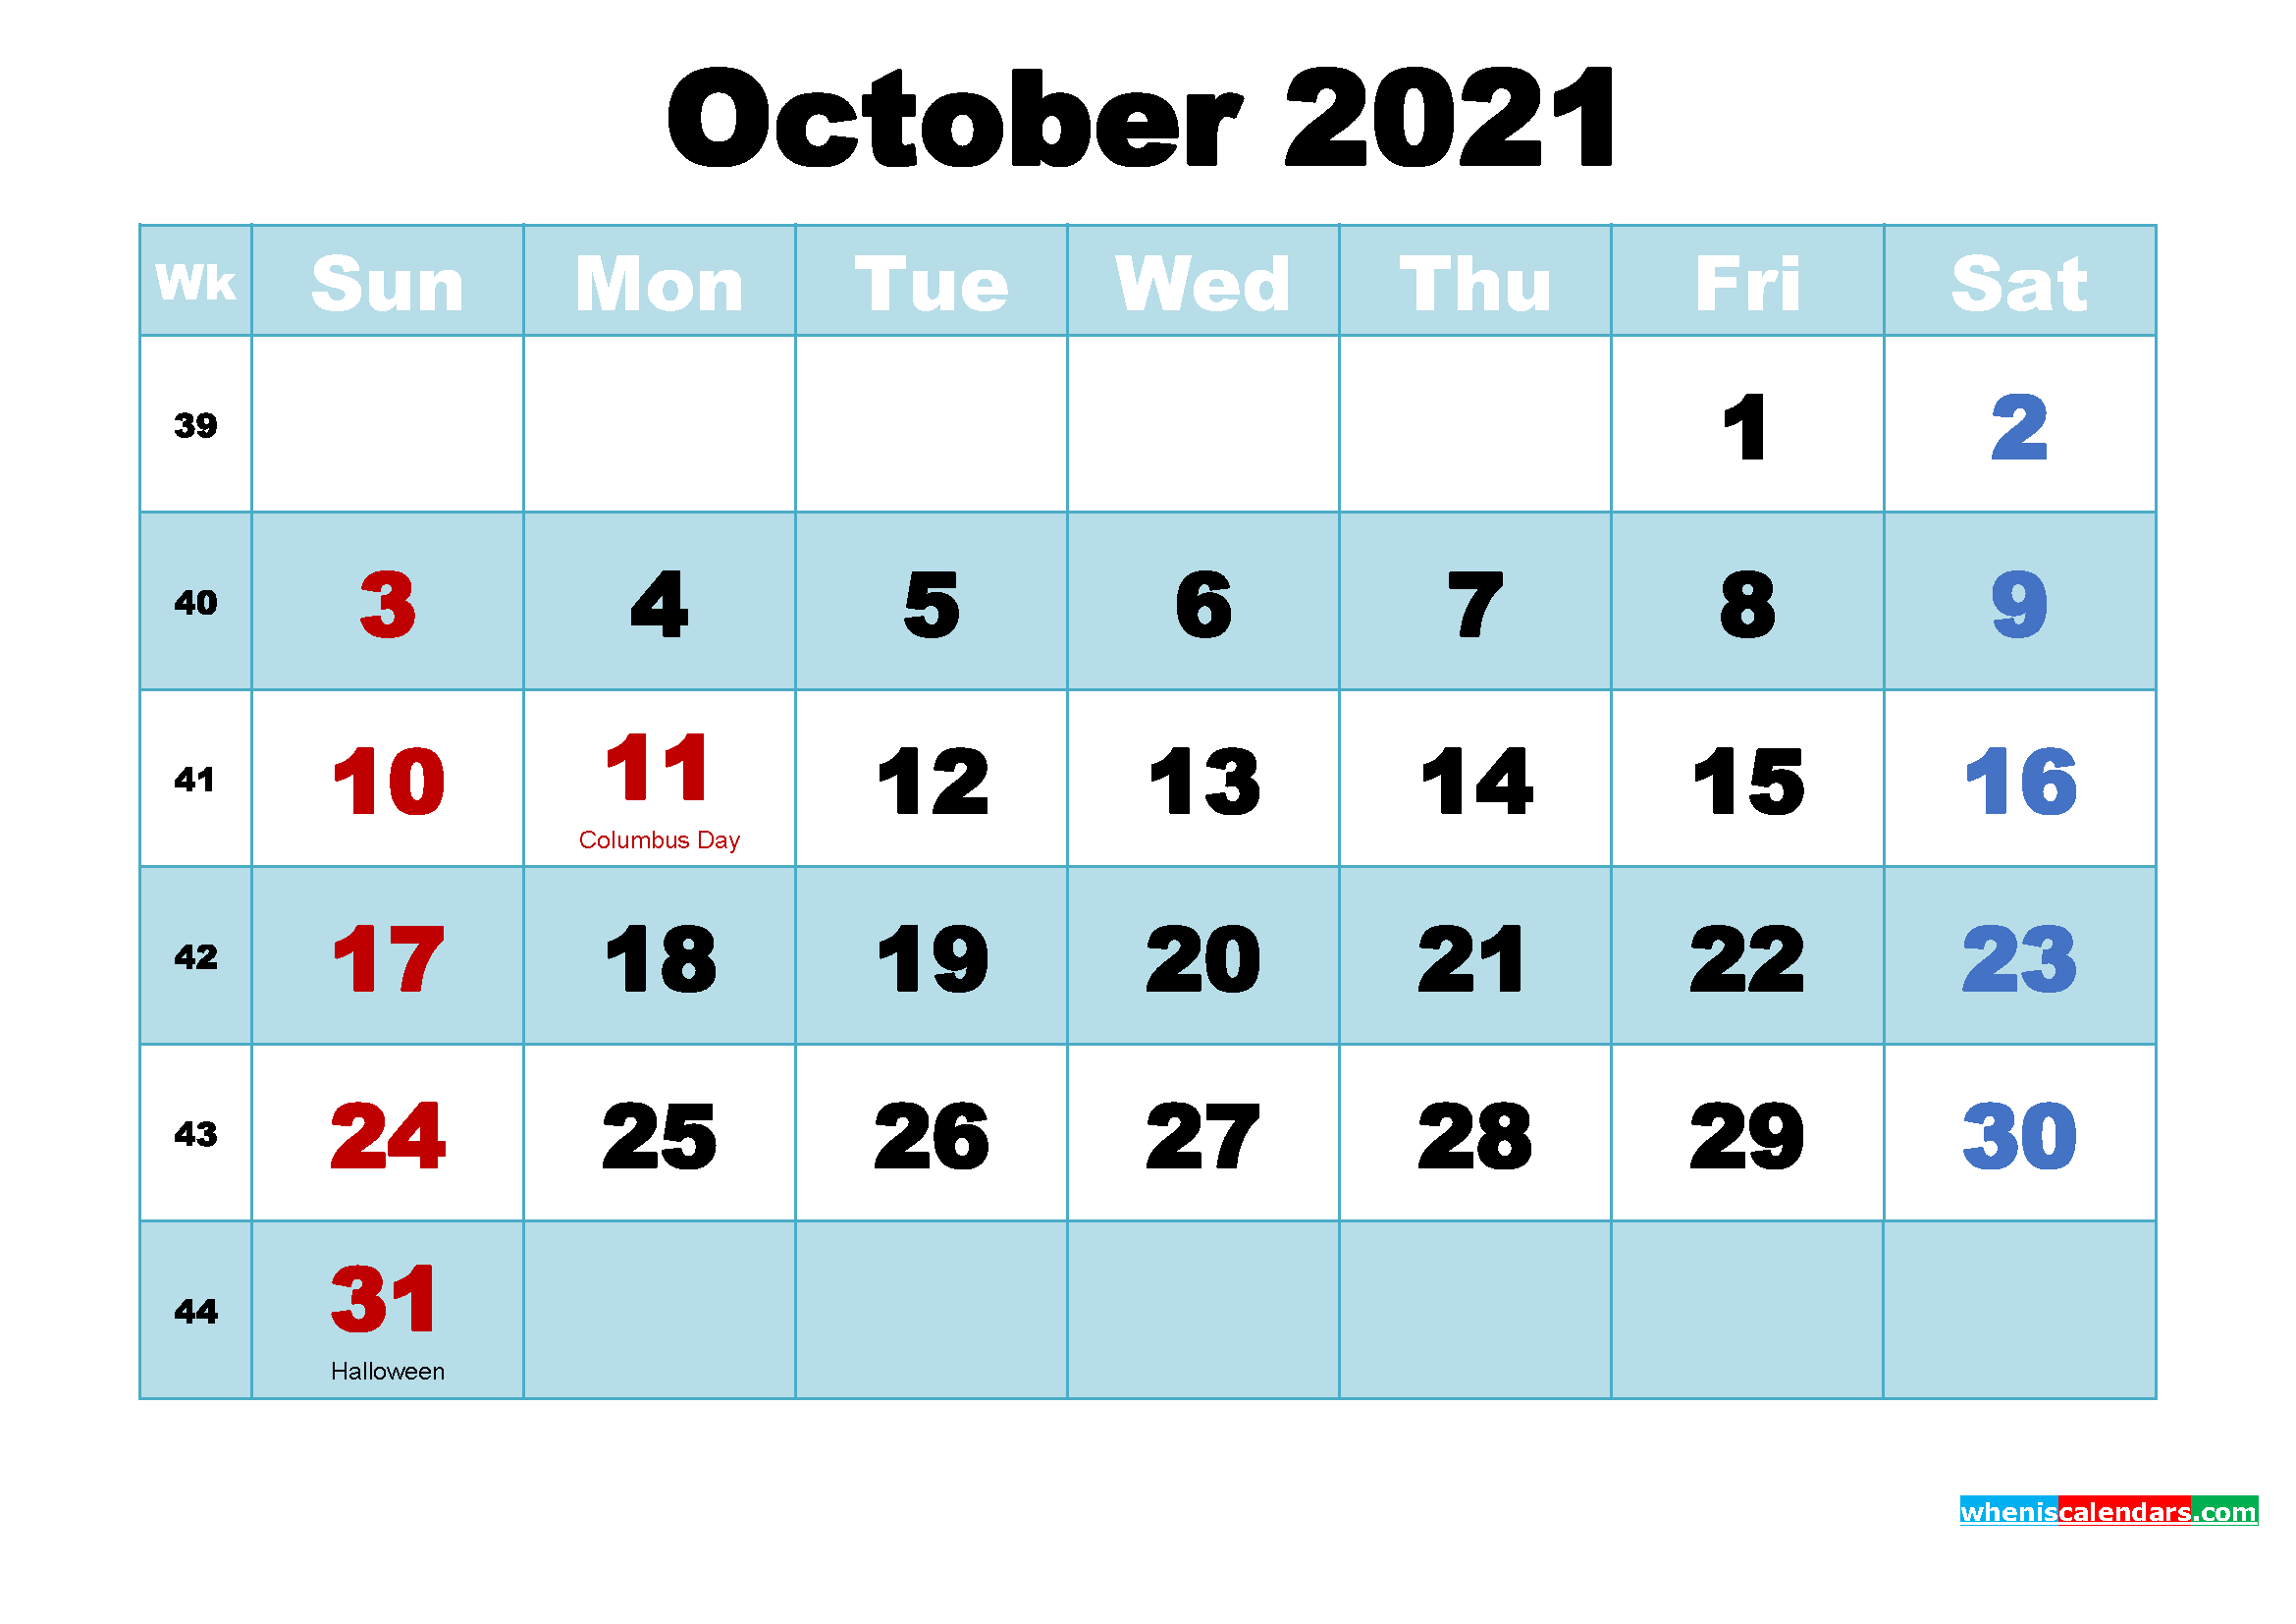 October 2021 Free Printable Calendar with Holidays